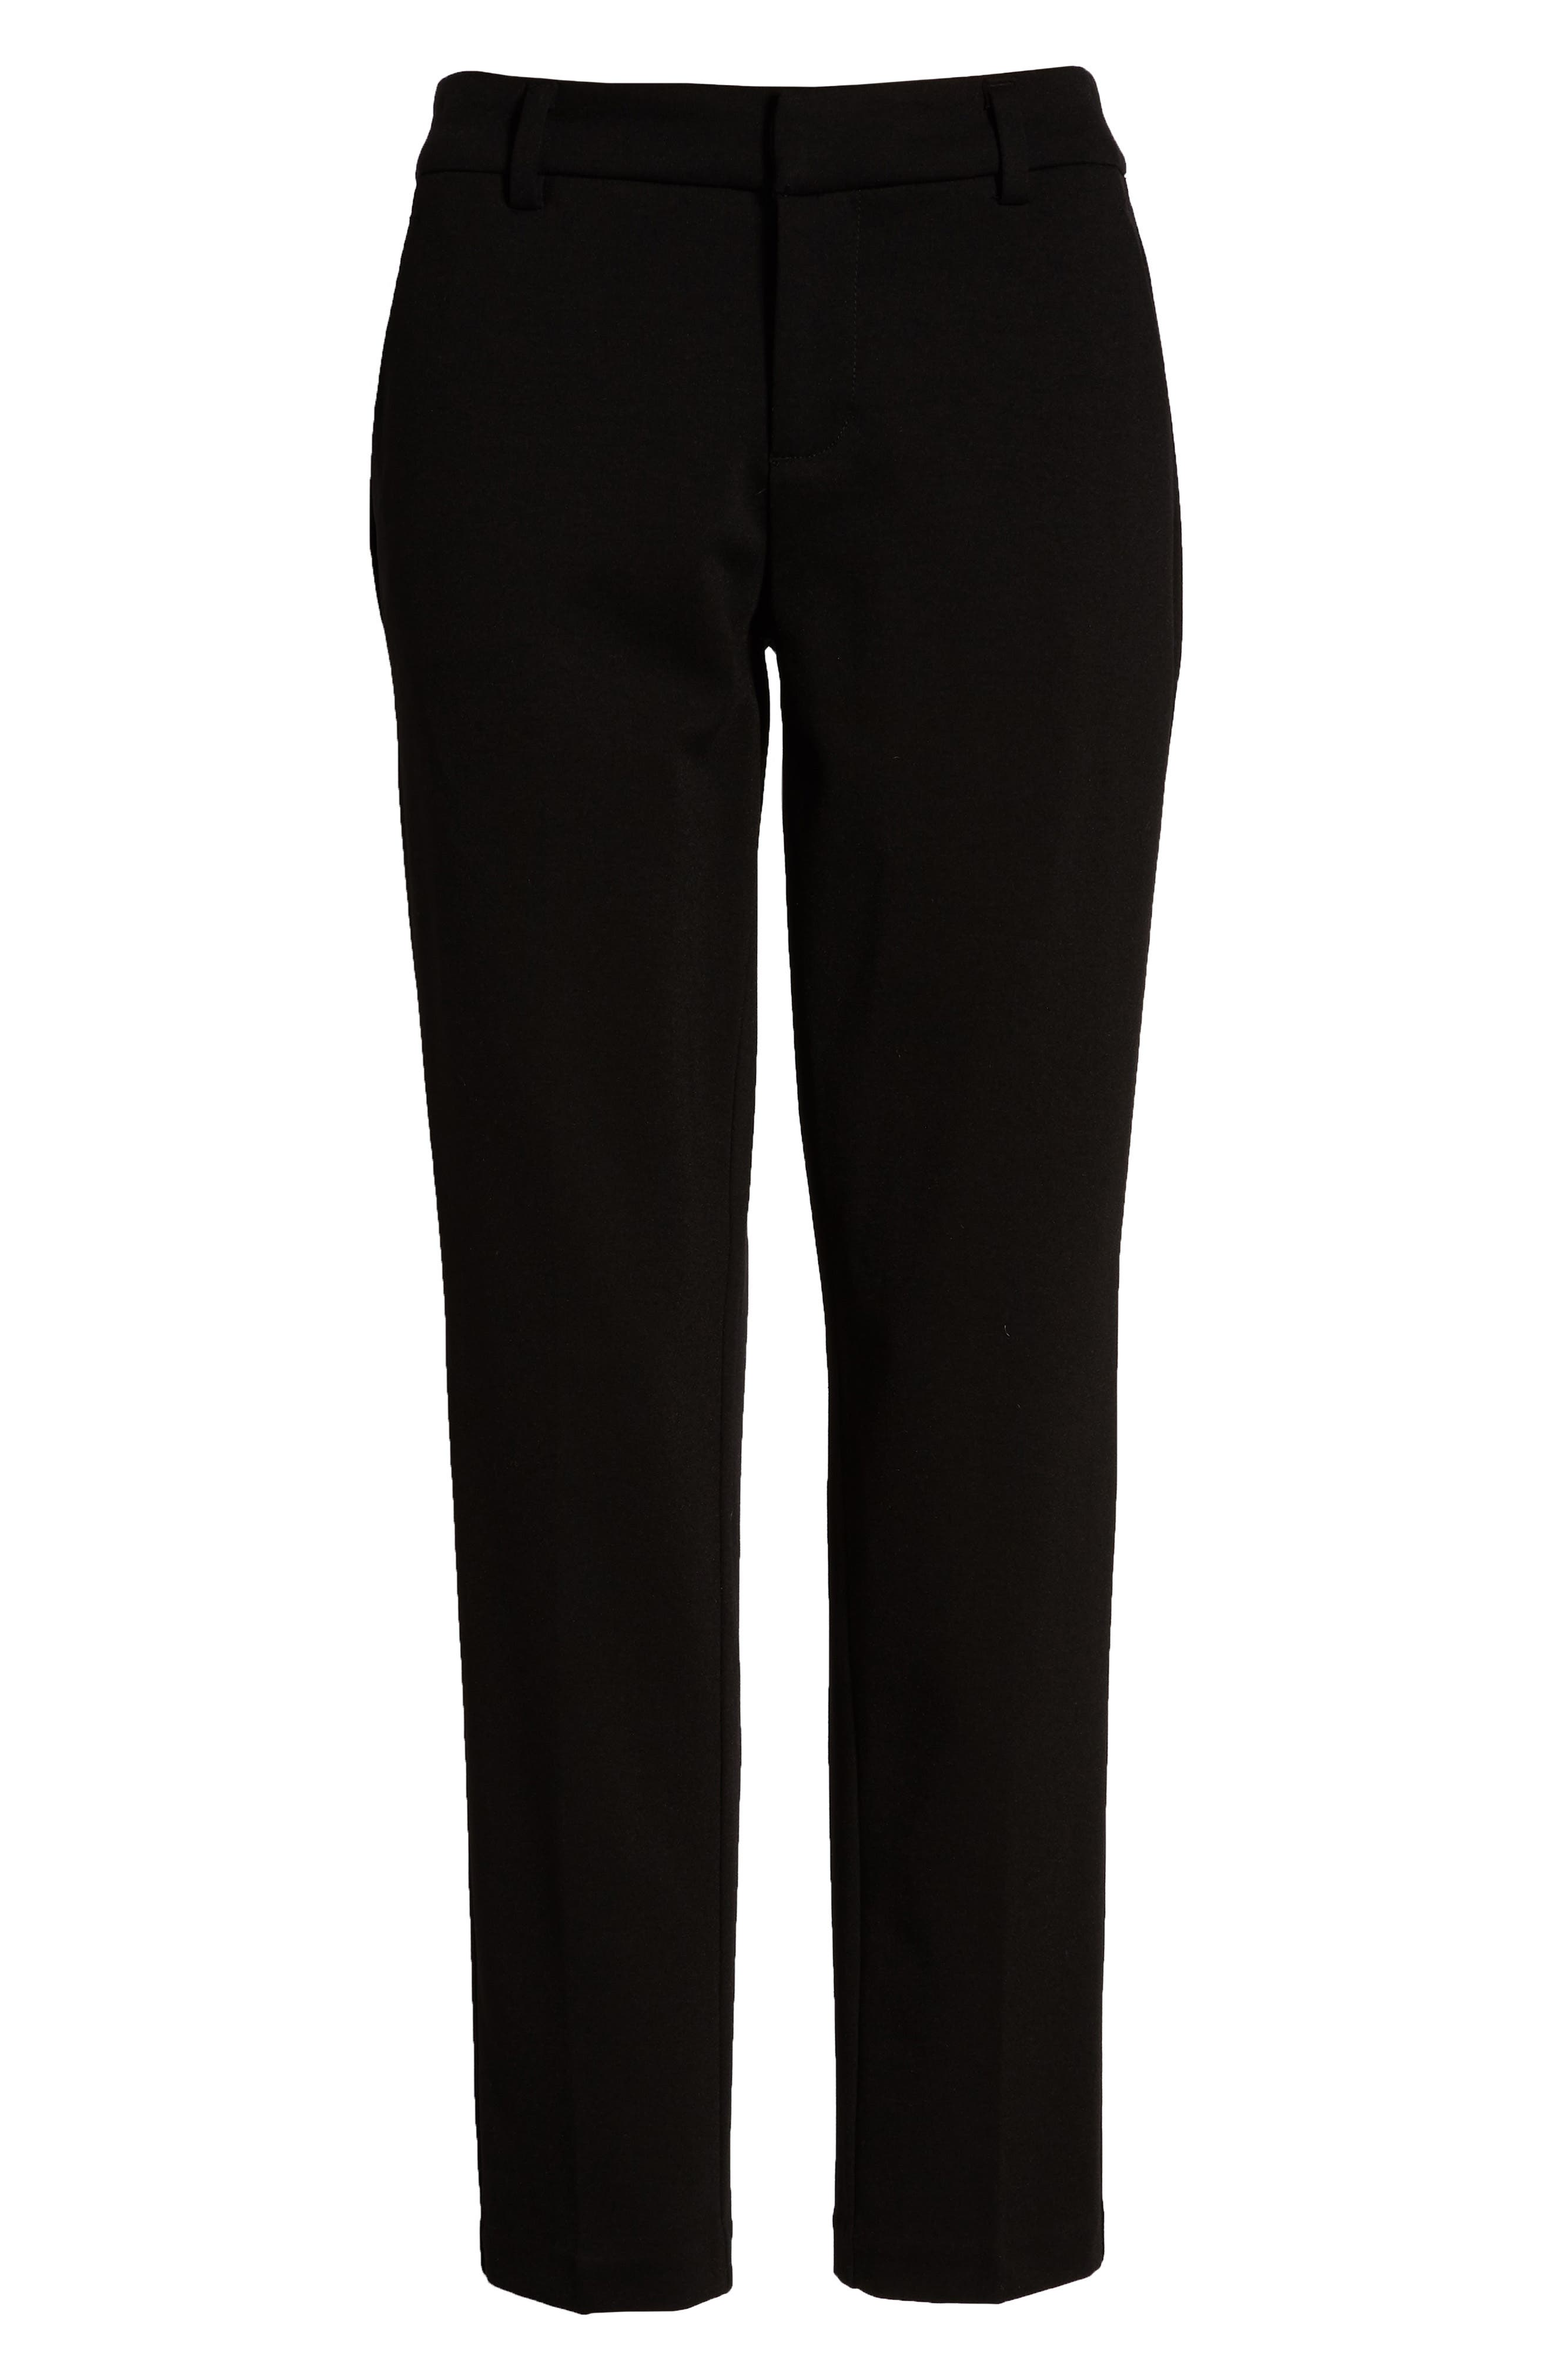 LIVERPOOL, Kelsey Knit Trousers, Alternate thumbnail 5, color, BLACK